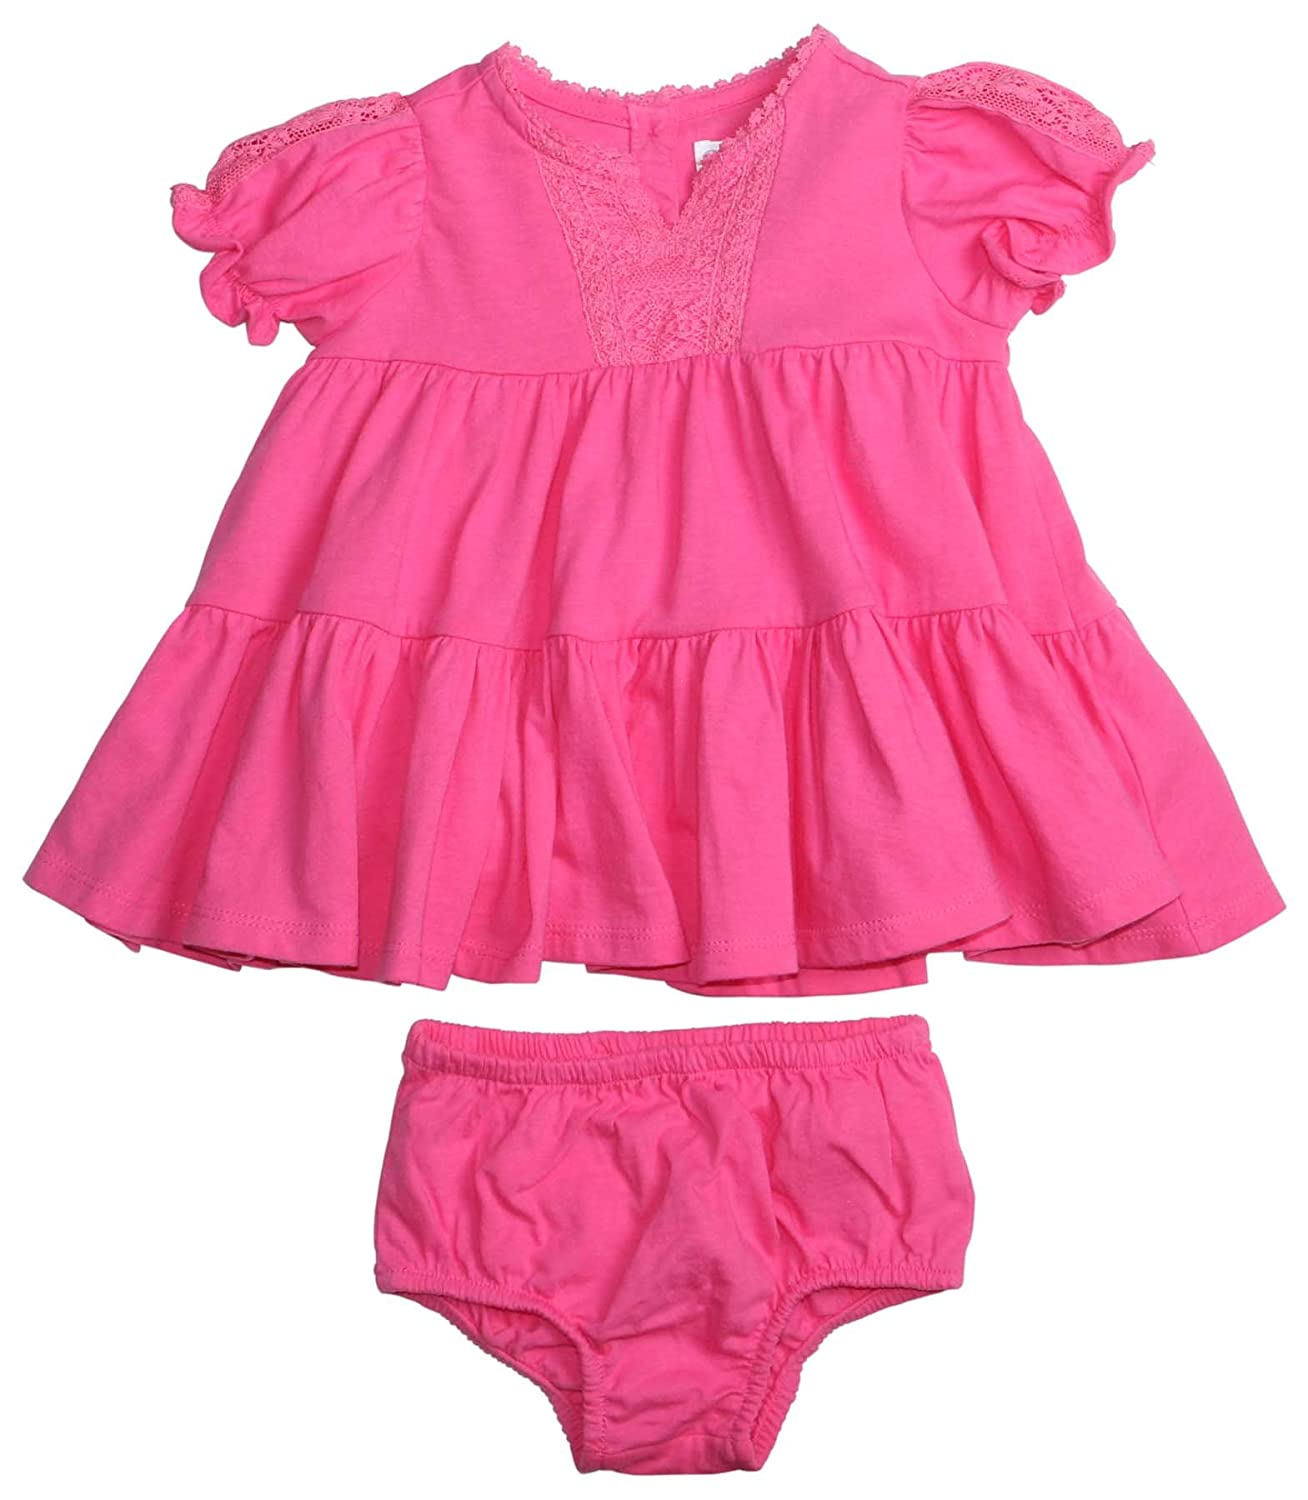 26a1c658b Top4: Polo Ralph Lauren Infant Girls' (0M-24M) 2 Piece Dress Set-Pink